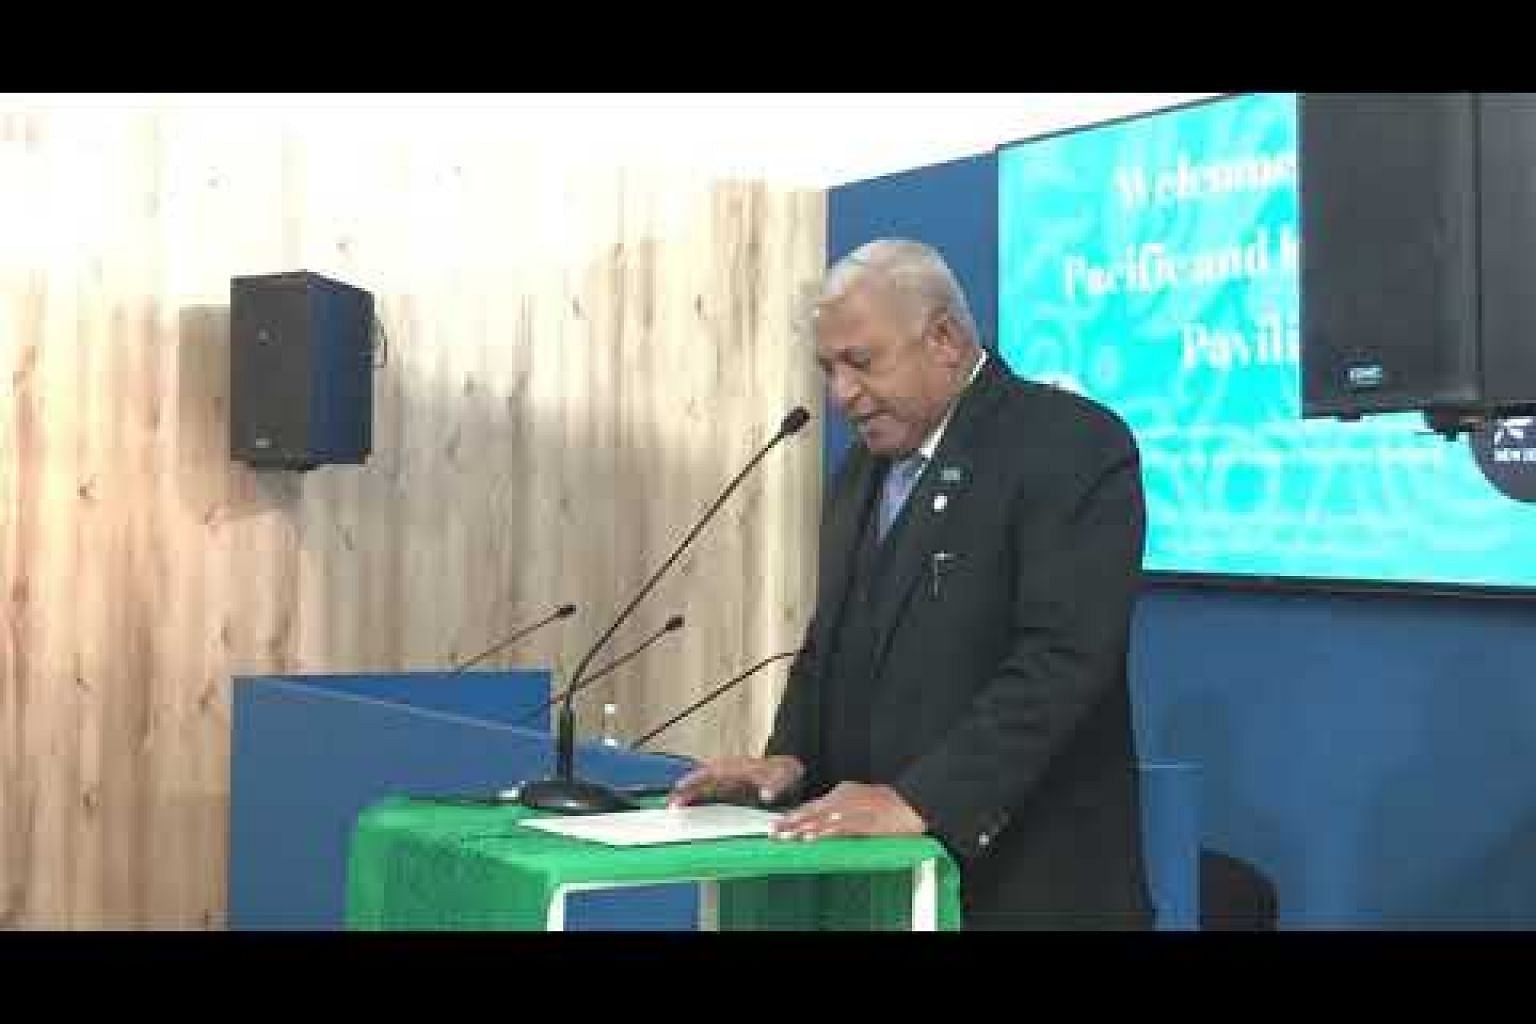 Fiji PM Frank Bainimaram making a plea to nations to ramp up ambition to curb global emissions